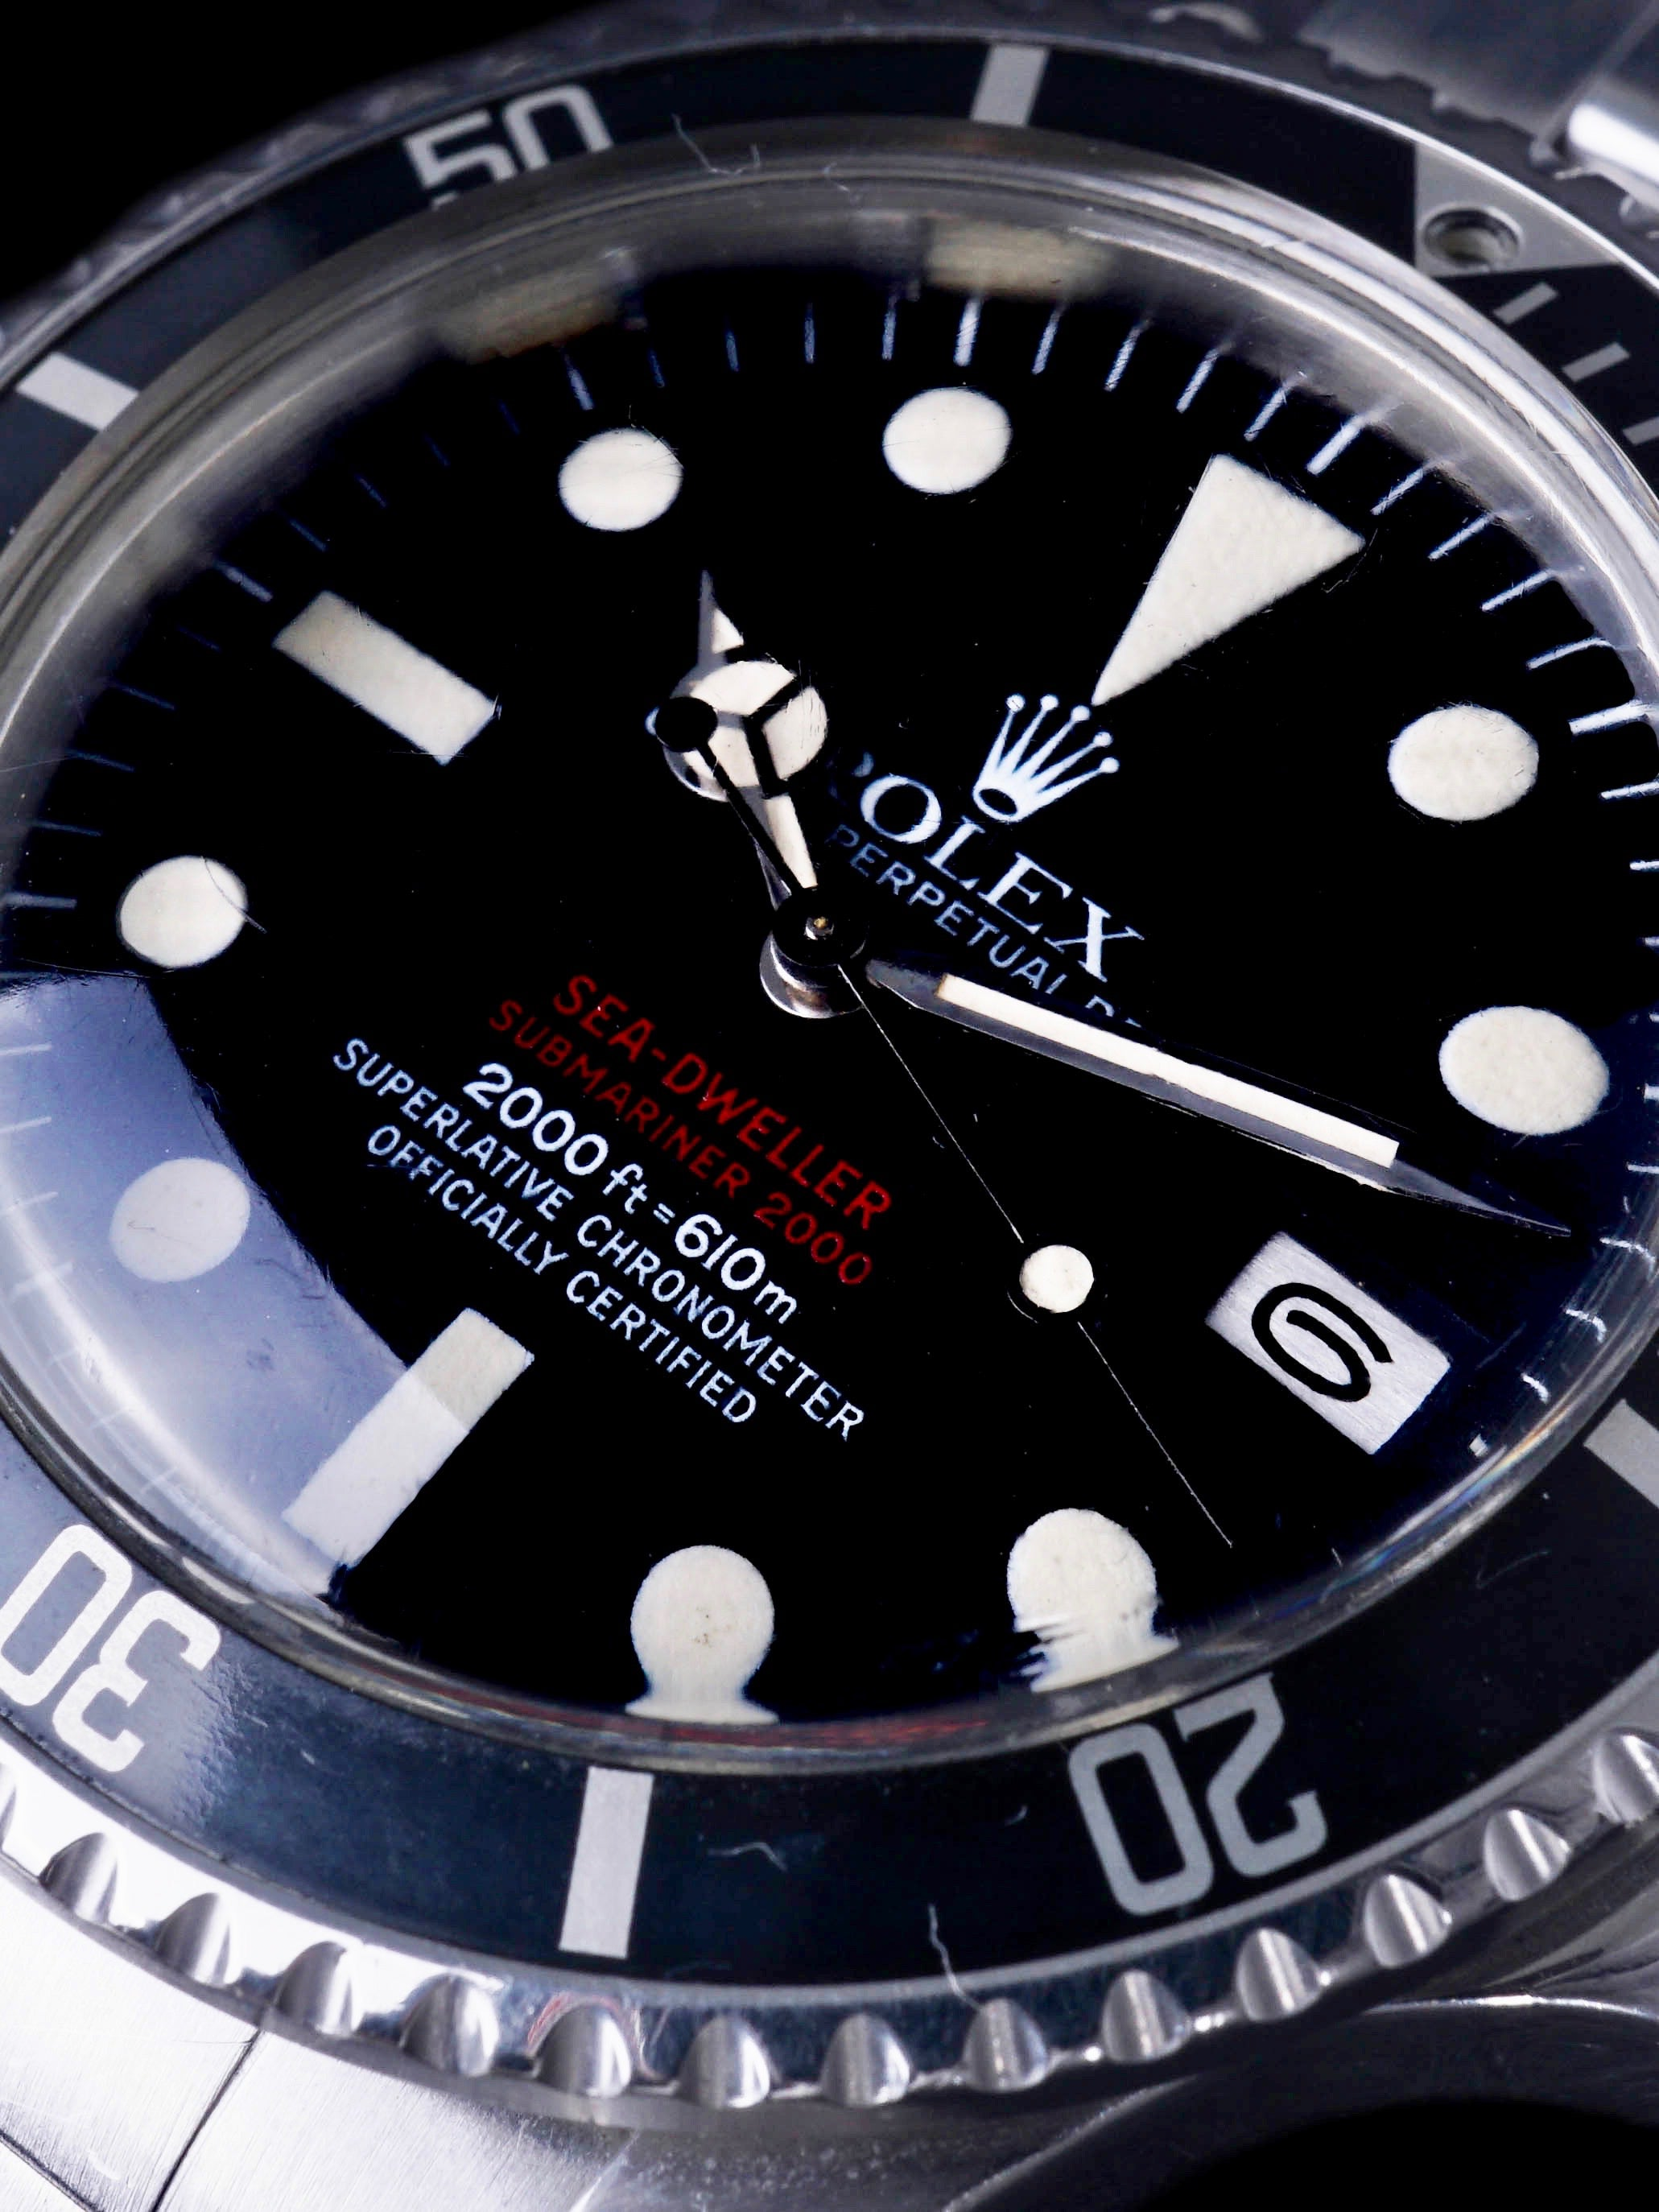 "1976 Rolex Double Red Sea-Dweller (Ref. 1665) ""Mk. IV"" W/ Box, Papers, Sales Receipt, and Service History"